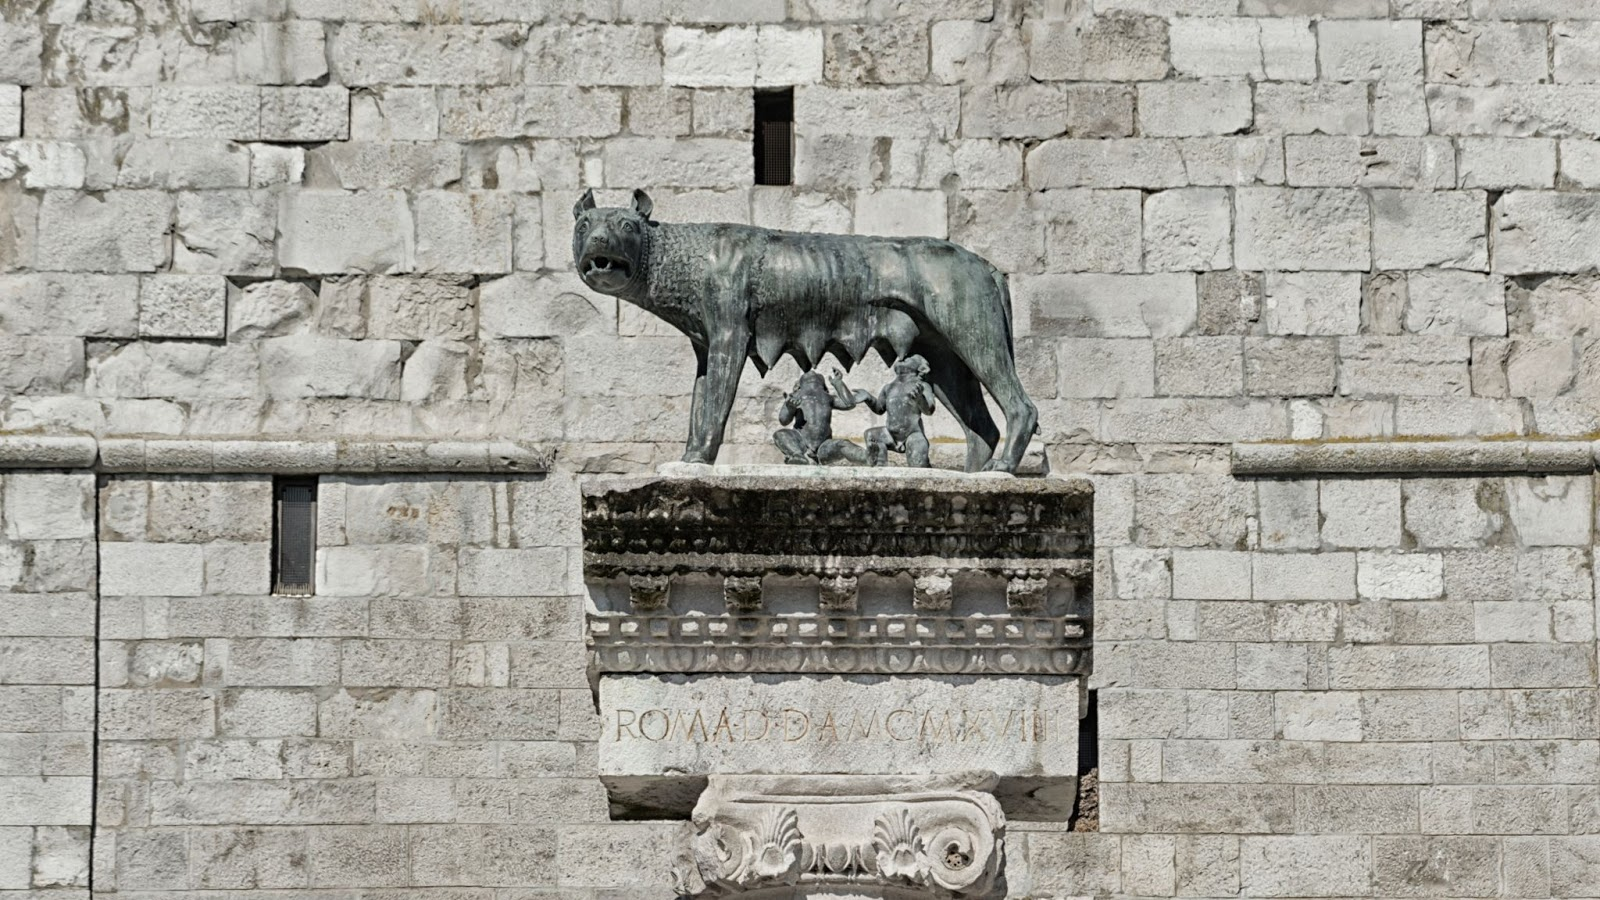 One of the Capitoline Wolf statues